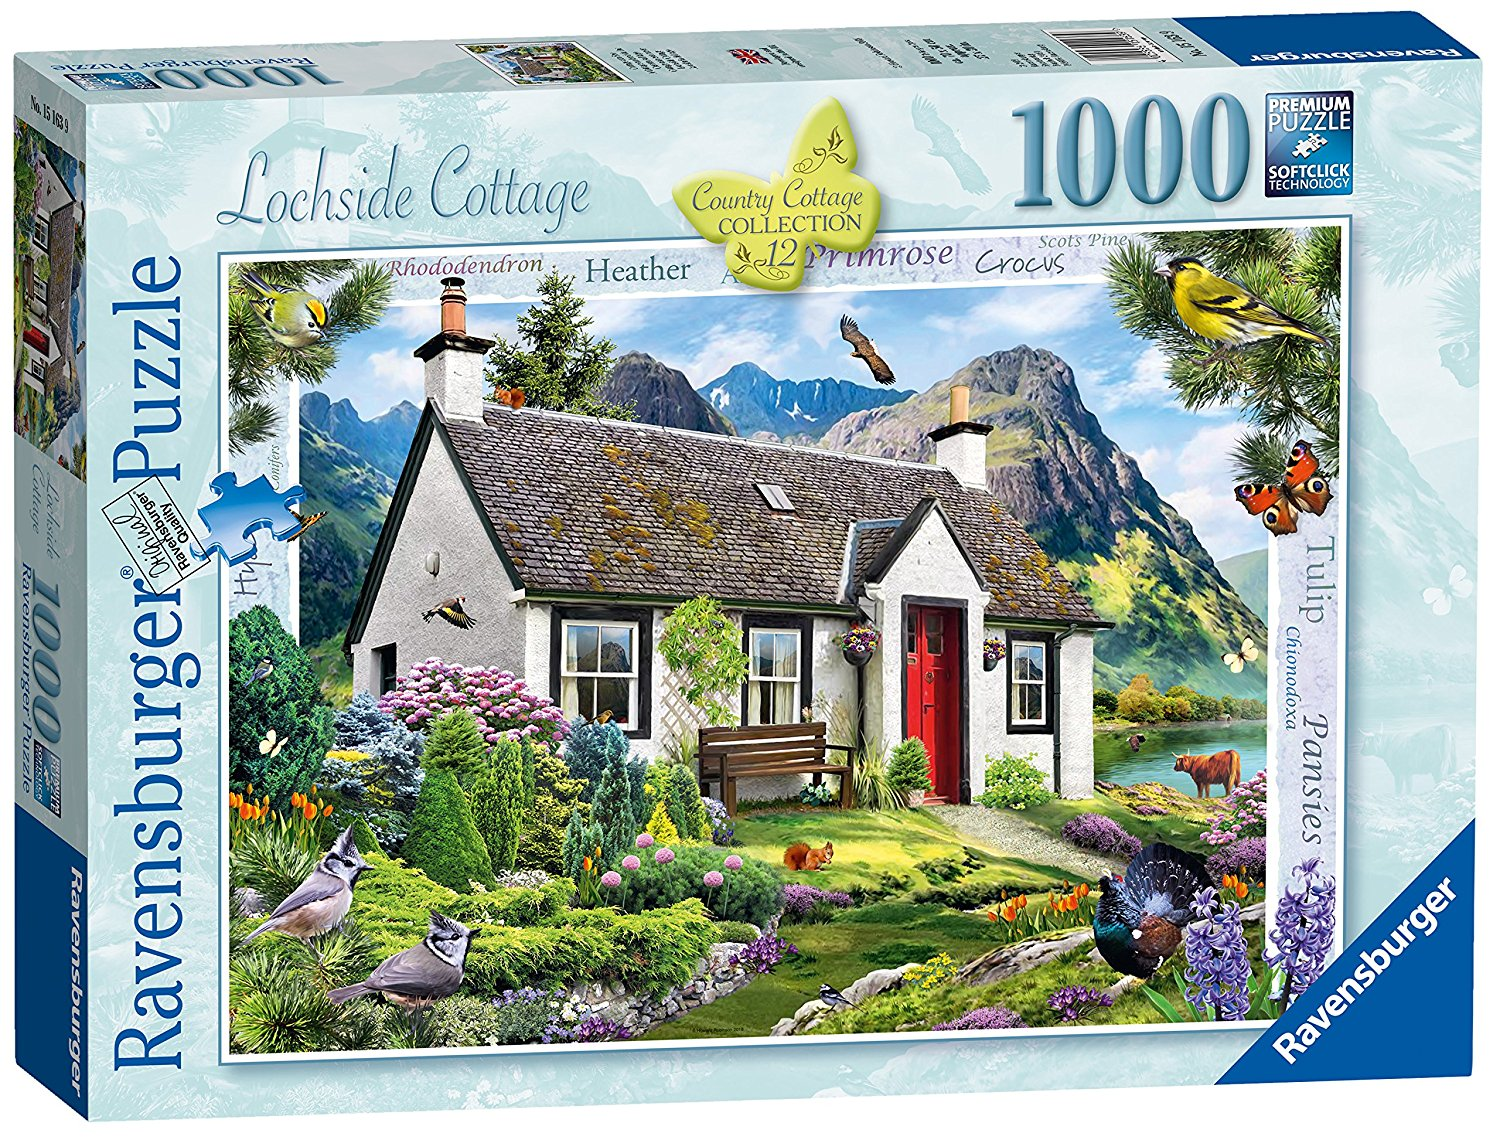 Country Cottage Collection, Lochside Cottage, 1000pc